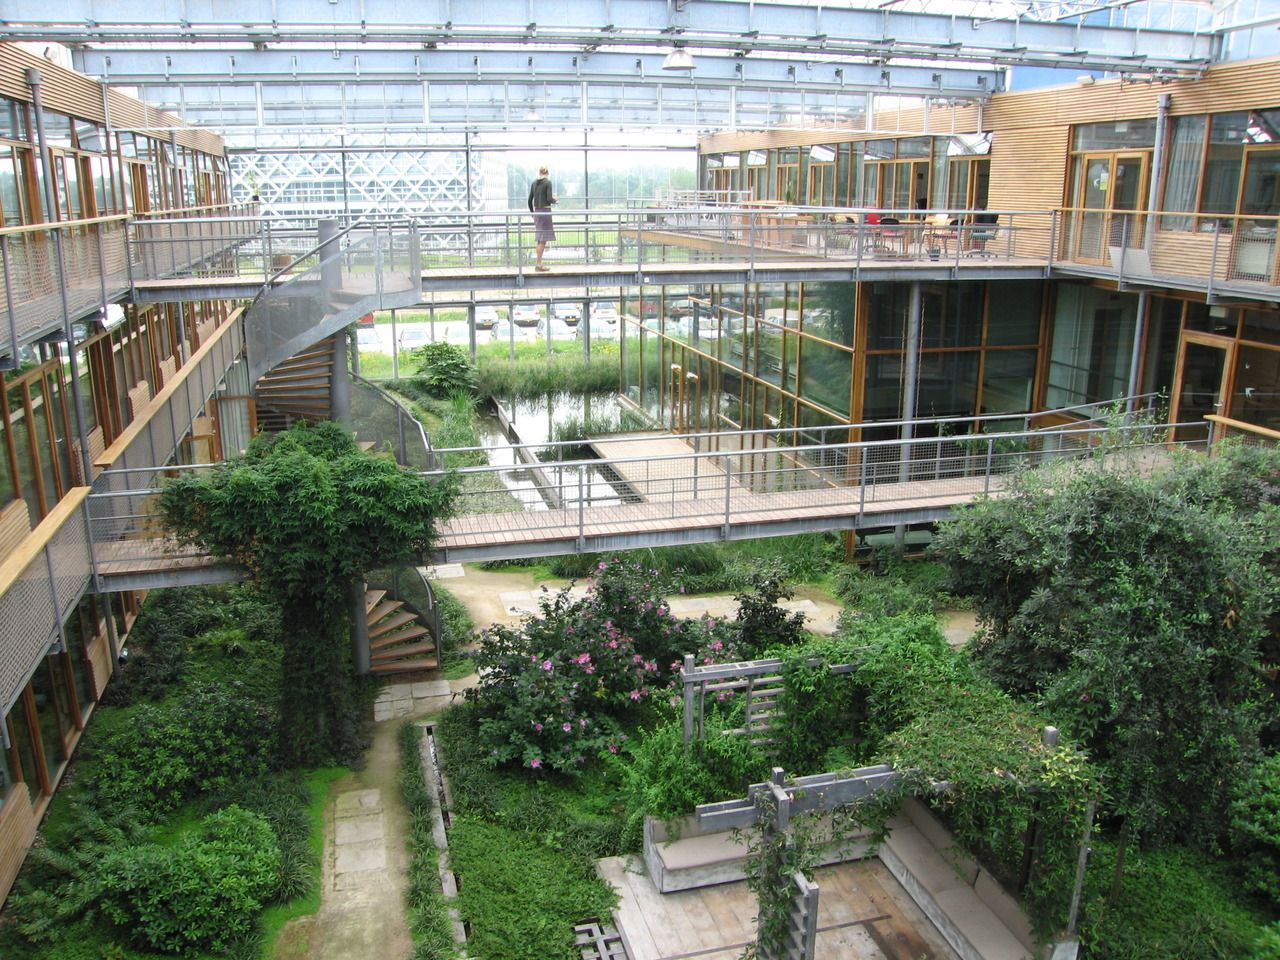 Building Architecture · Wageningen University Greenhouse